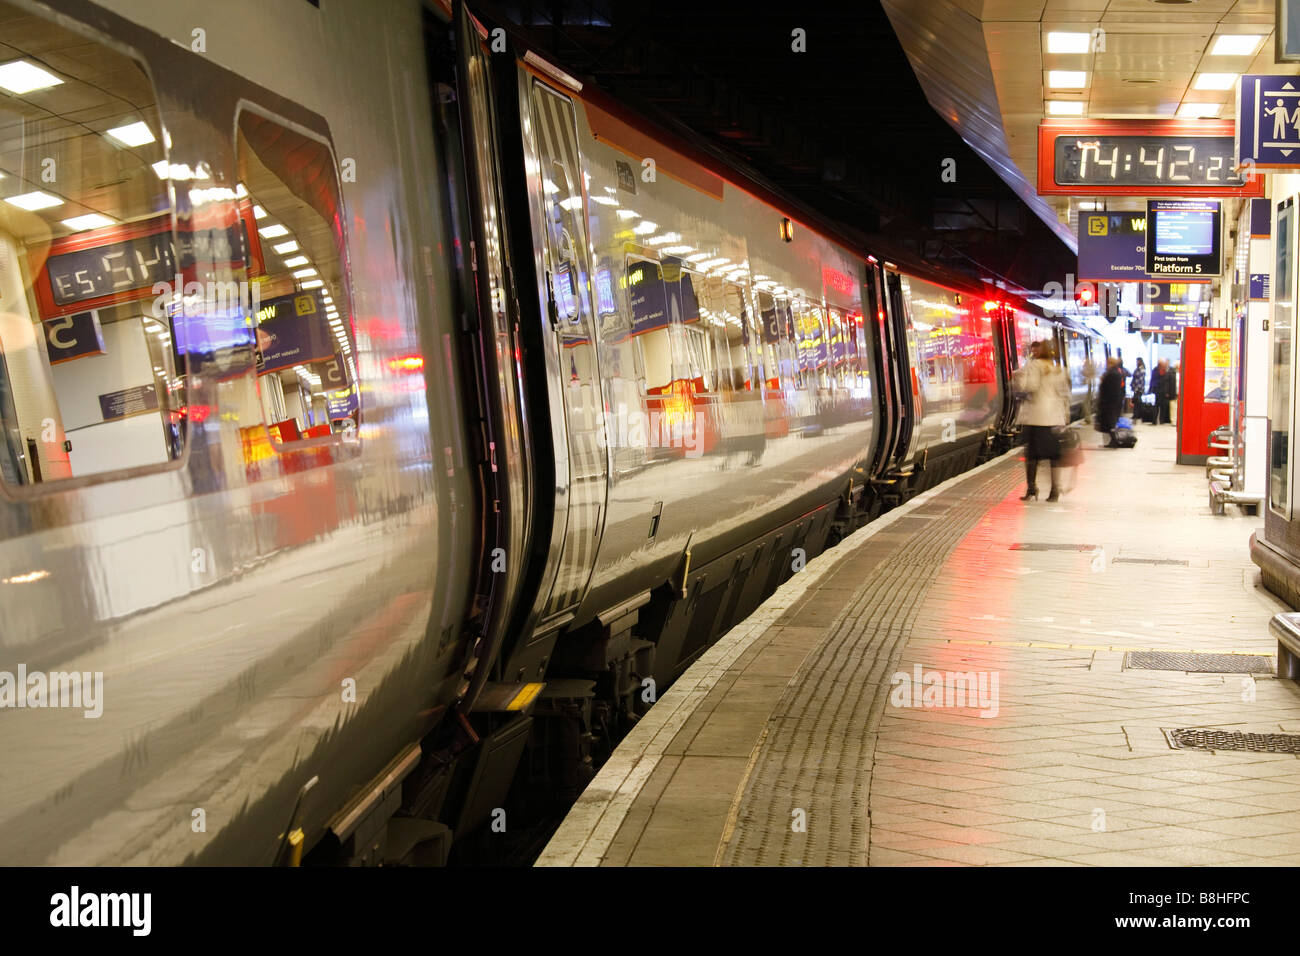 Train arriving at a platform at the train station - Stock Image